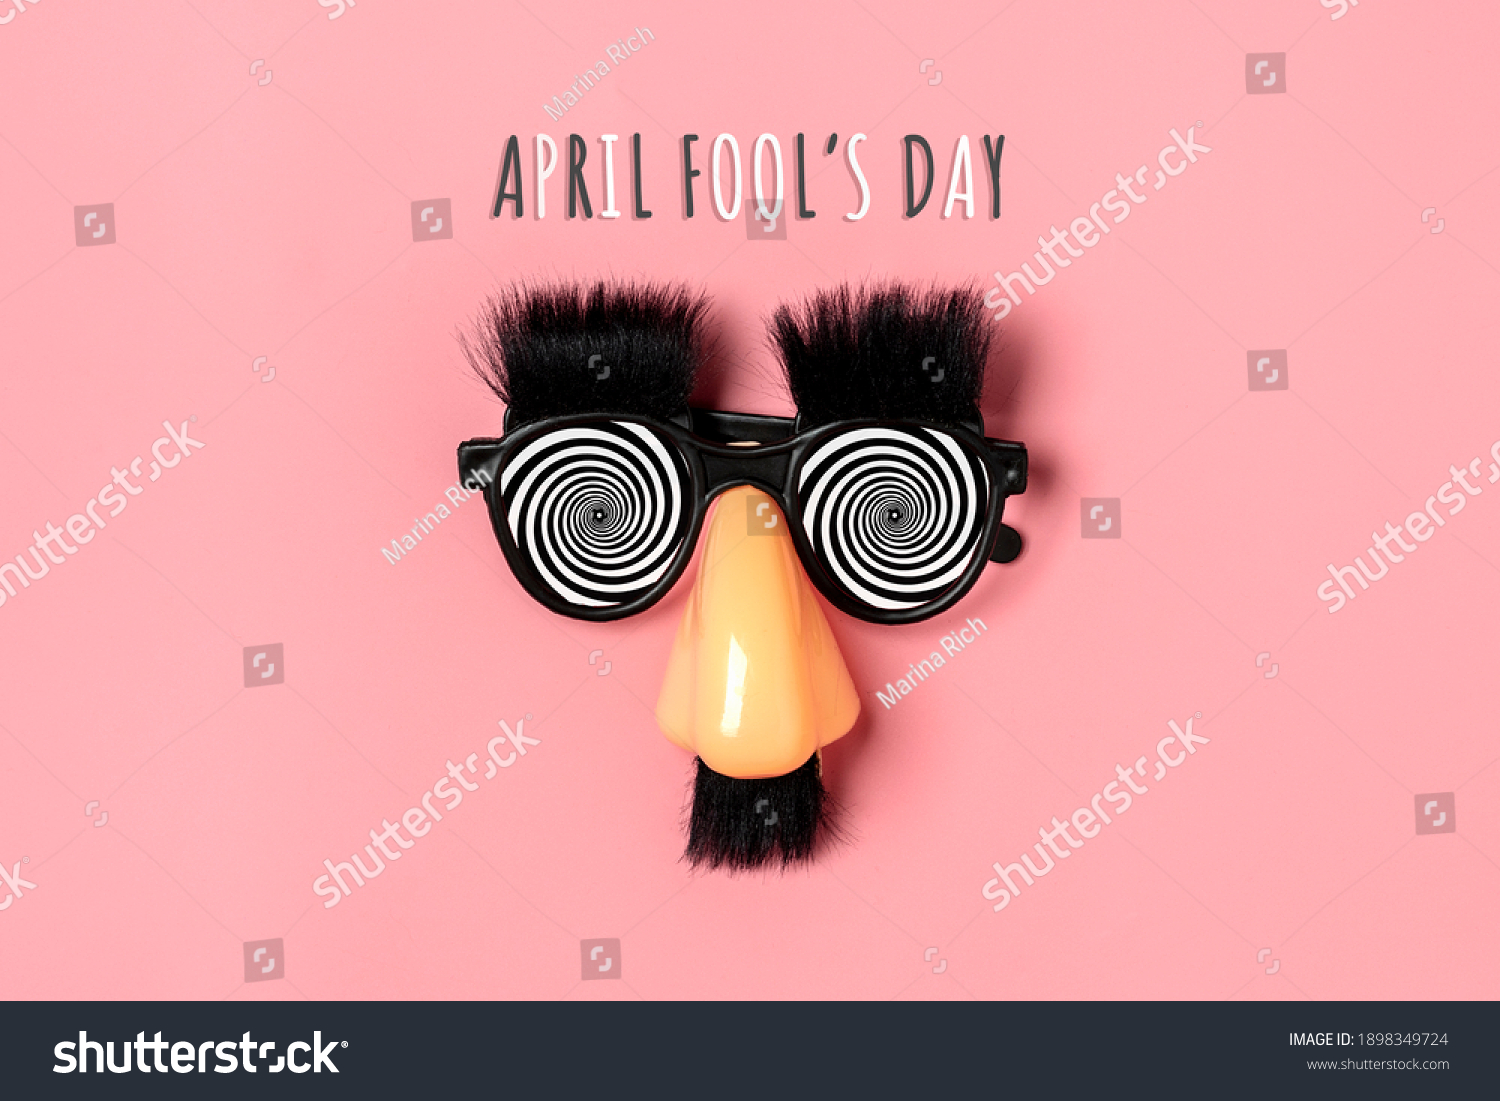 funny face - fake eyeglasses, nose and mustache on pink background Happy fools day  concept  1st April party Holiday card #1898349724